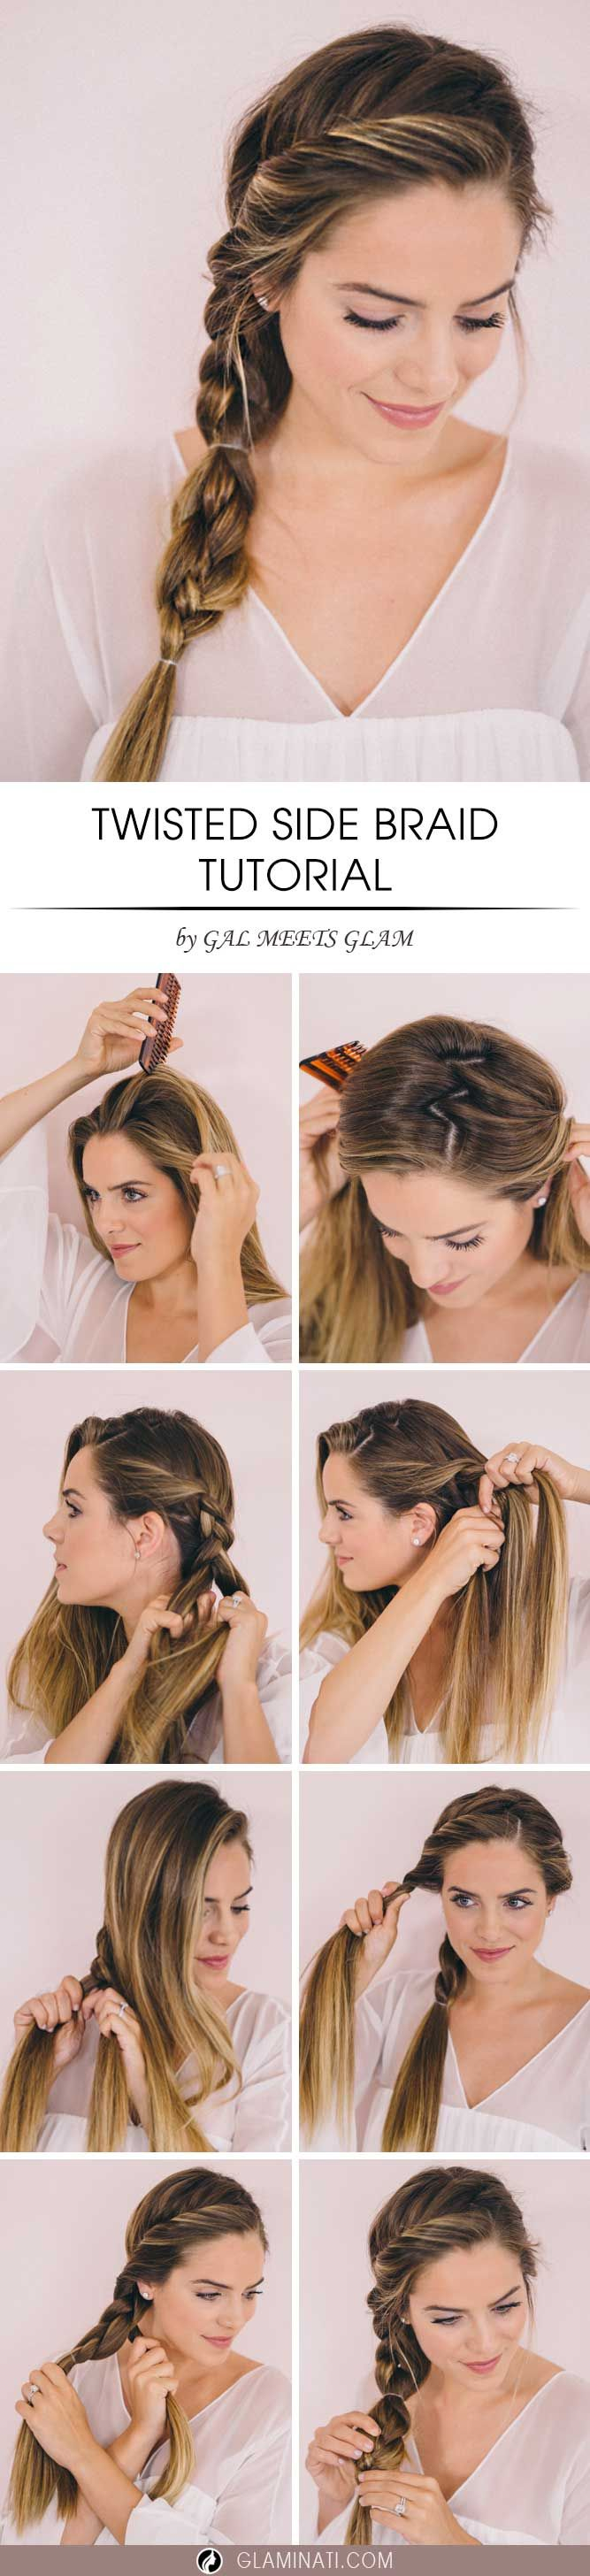 Twisted side braid for various occasions hair ideas pinterest